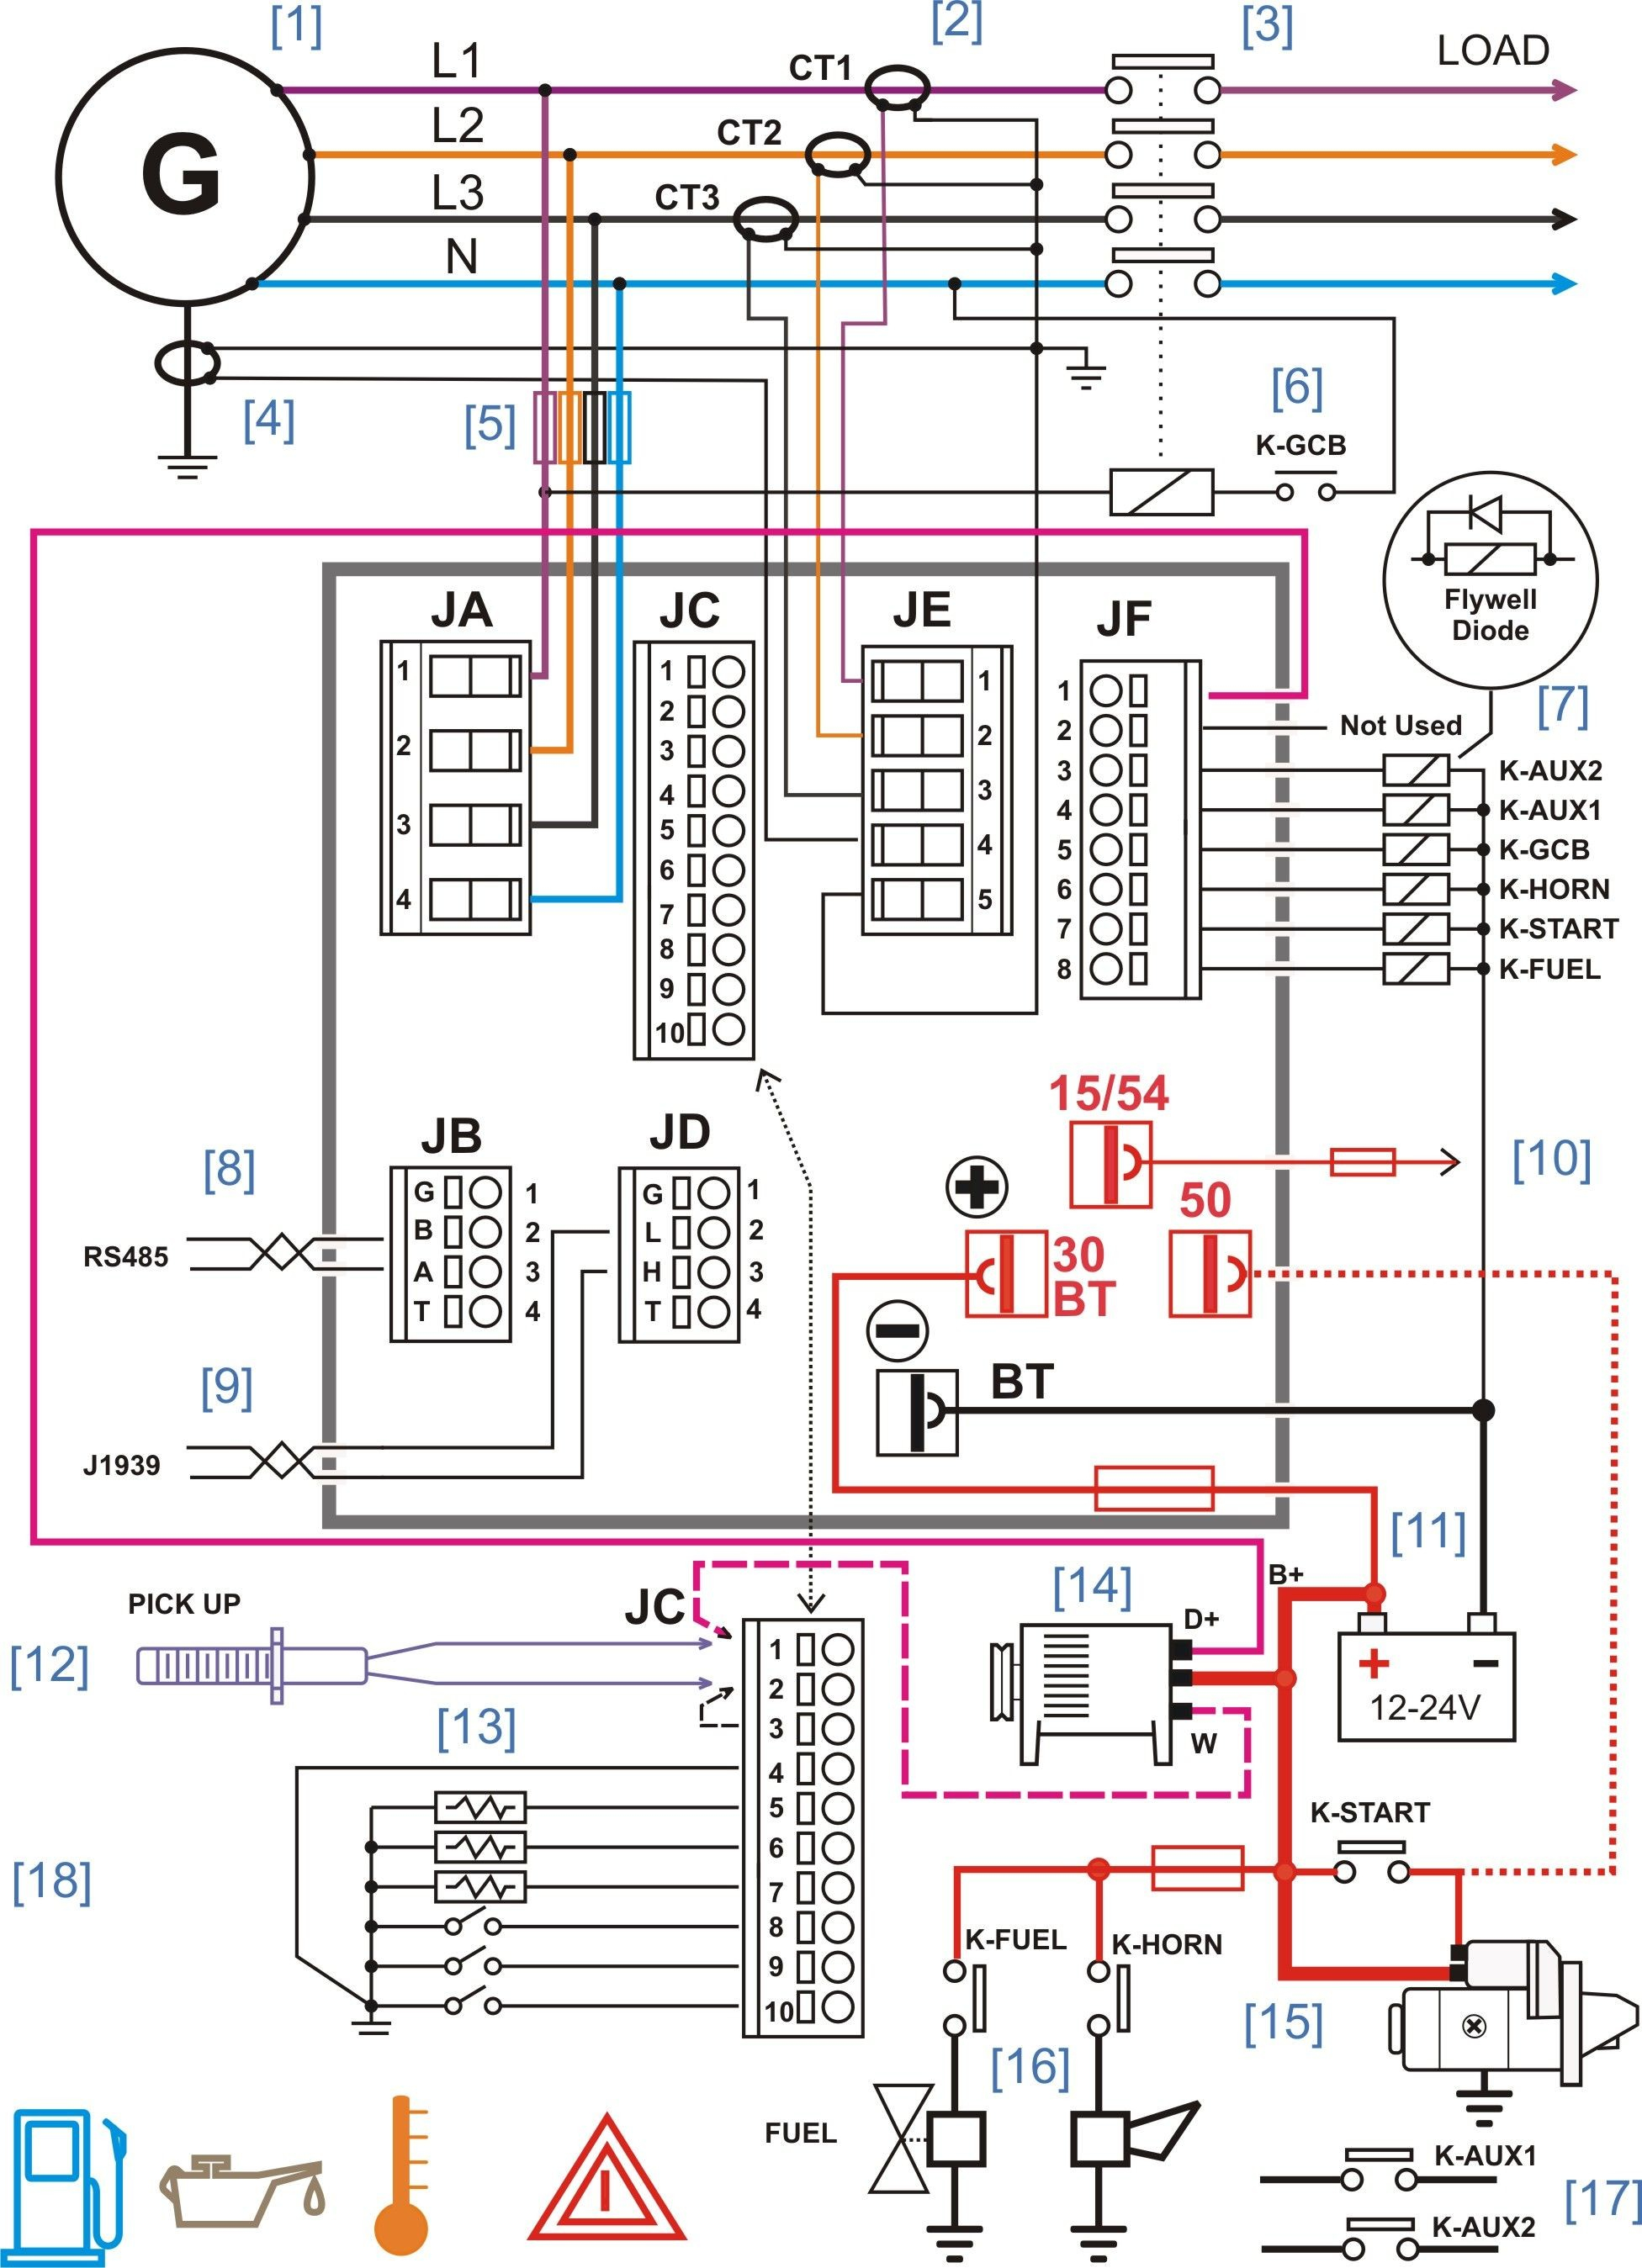 generator control panel wiring diagram pdf Download-Wiring Diagram Portable Generator New Diesel Generator Control Panel Wiring Diagram 20-p